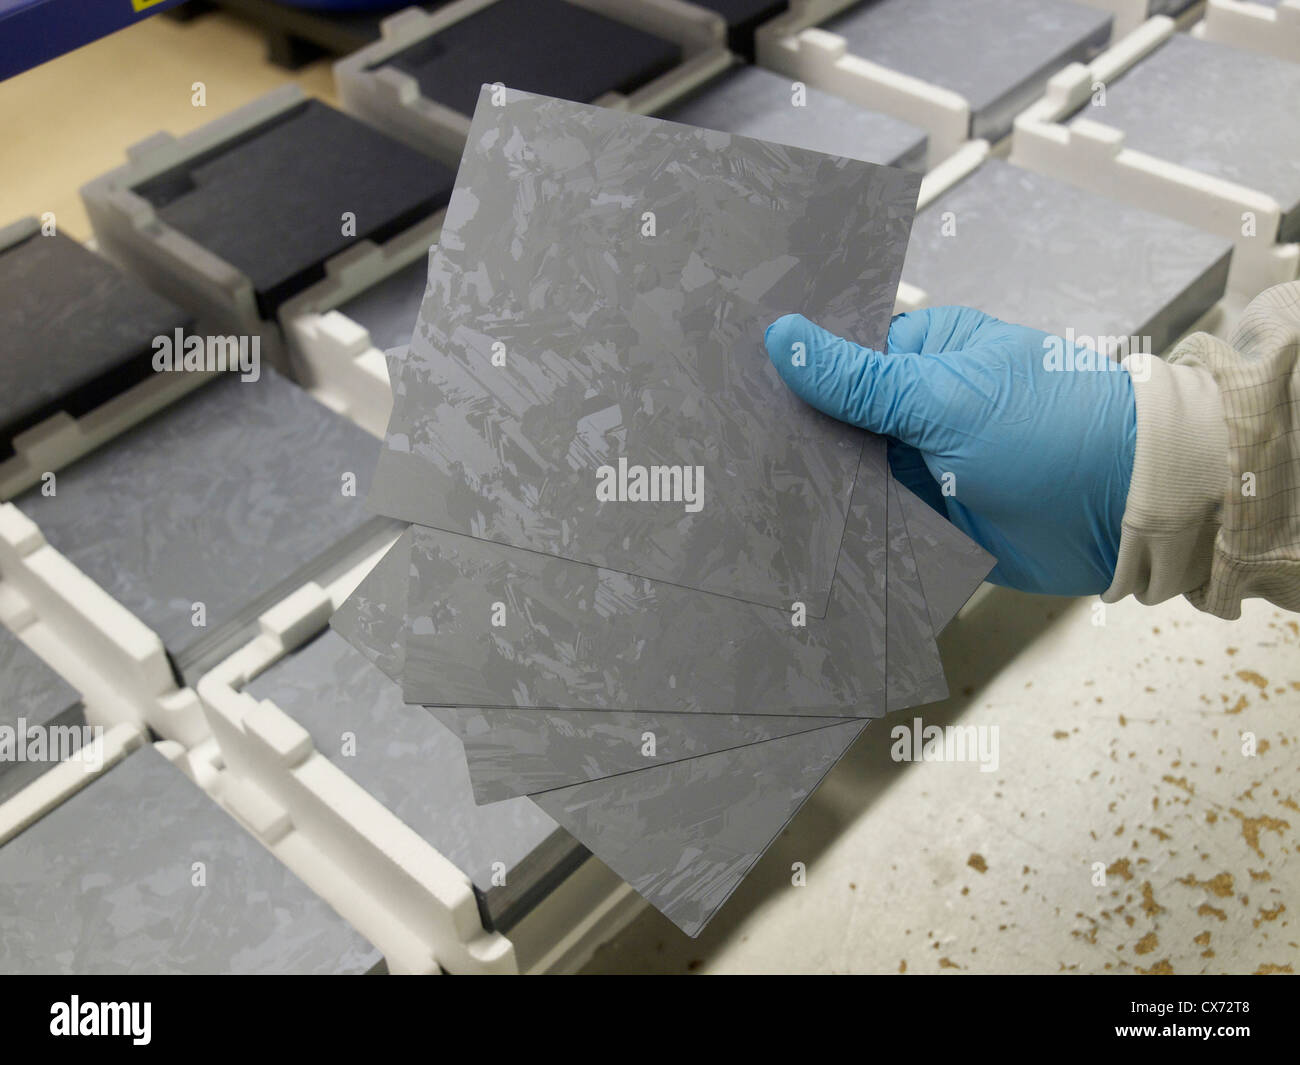 Hand holding 200 micron thick polycrystalline silicon wafers that will be used for solar cell production. - Stock Image